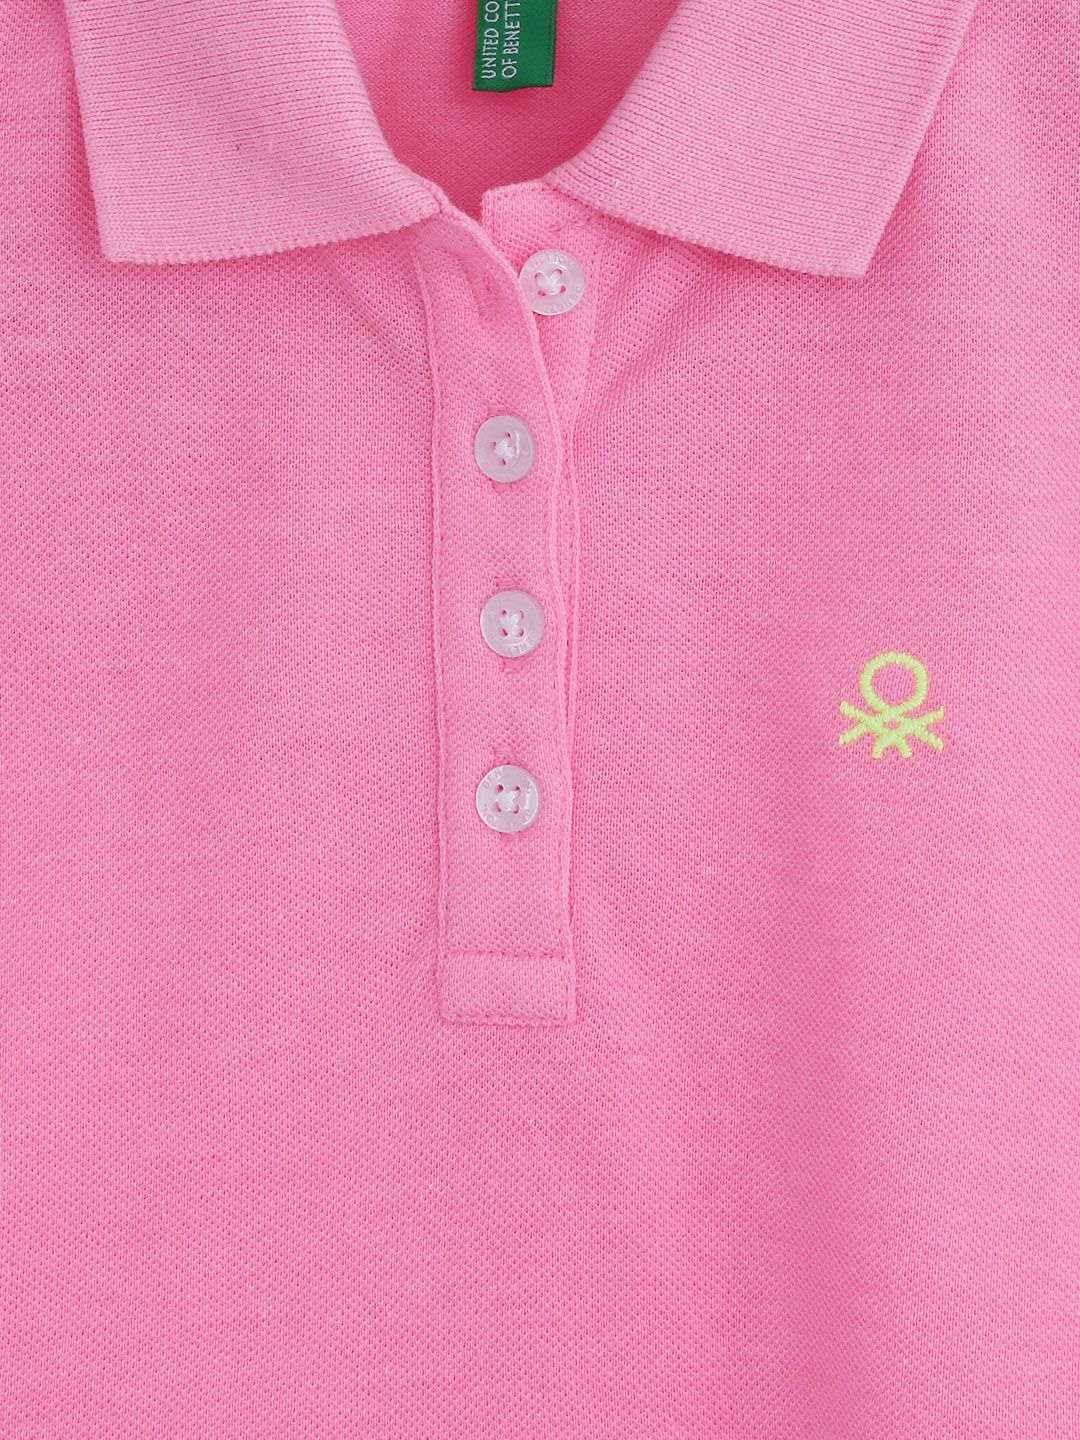 4afb4851 Myntra United Colors of Benetton Girls Pink Polo T-shirt 714652 | Buy  Myntra United